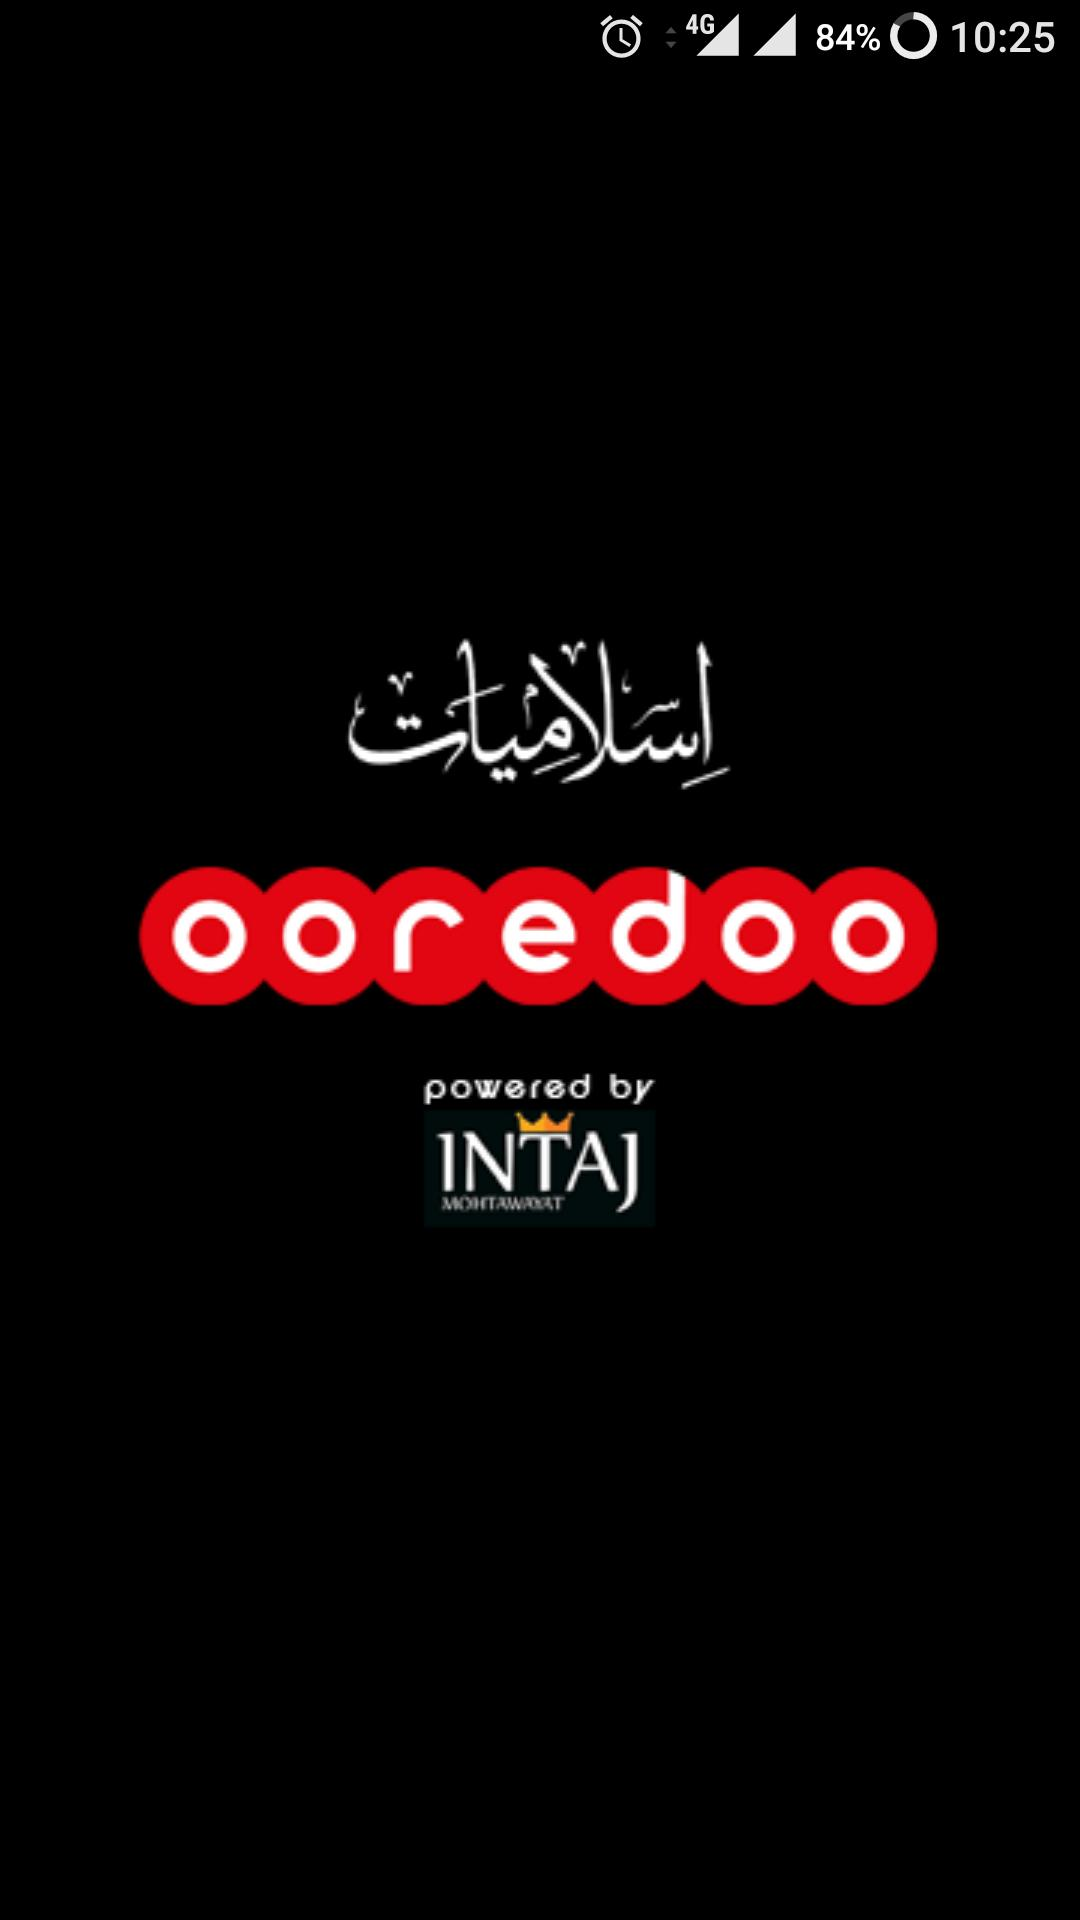 Islamiyate Ooredoo Algérie for Android - APK Download